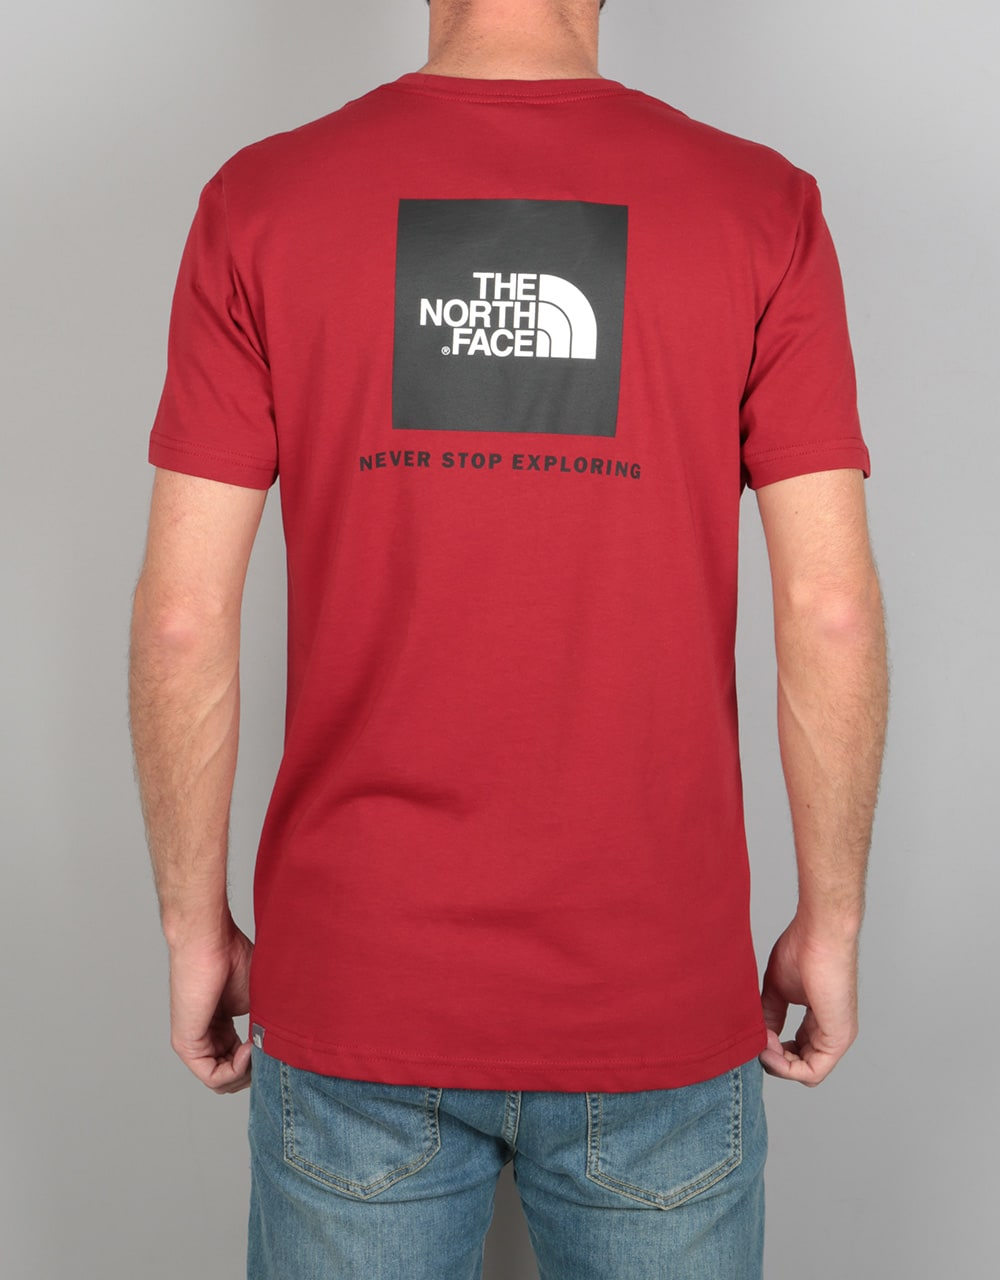 The North Face SS Red Box T Shirt Cardinal Red